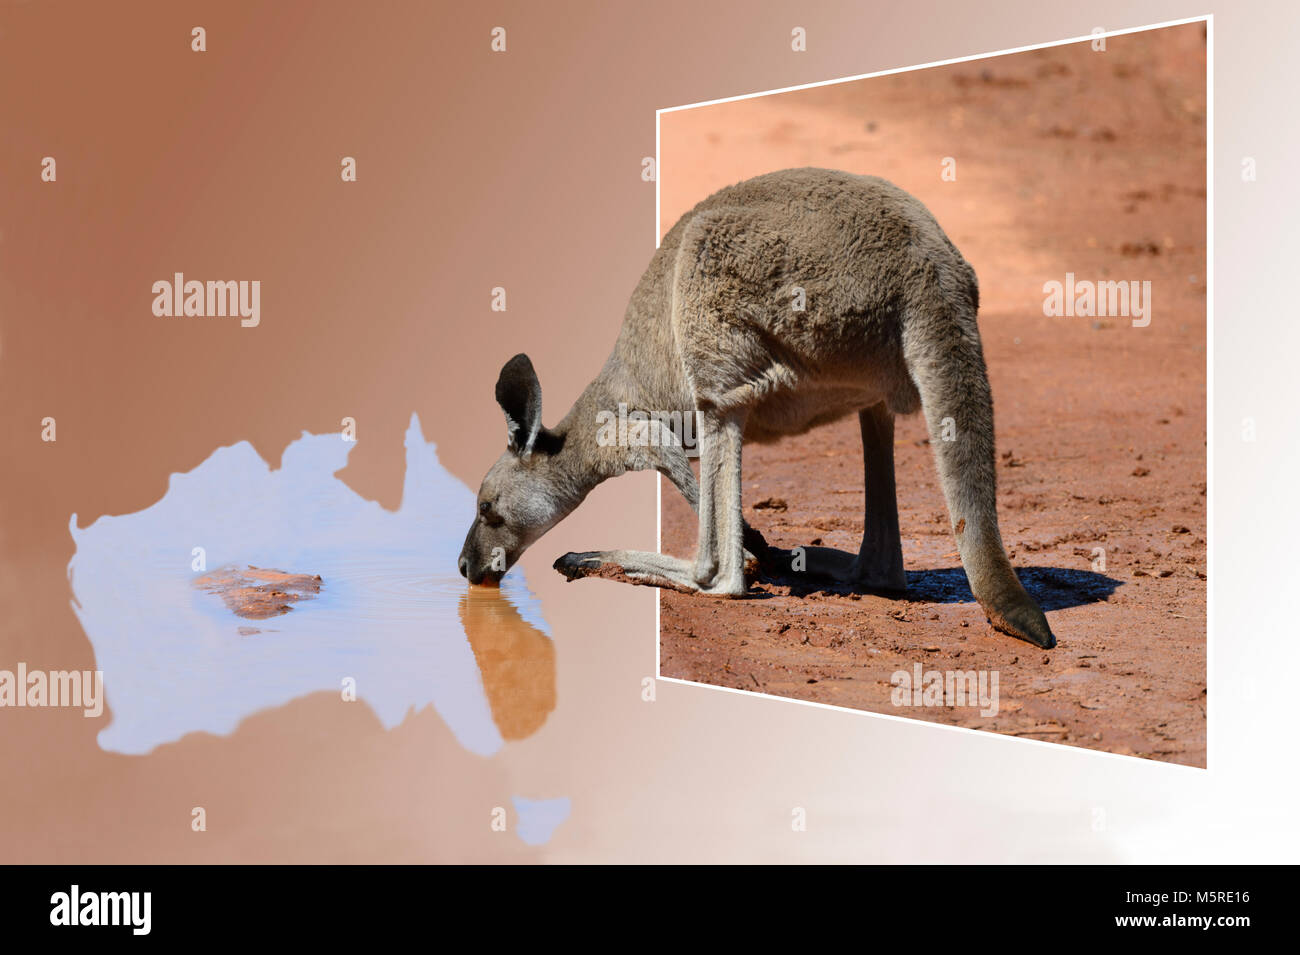 Out of Frame Kangaroo drinking from a puddle in the shape of Australia Stock Photo